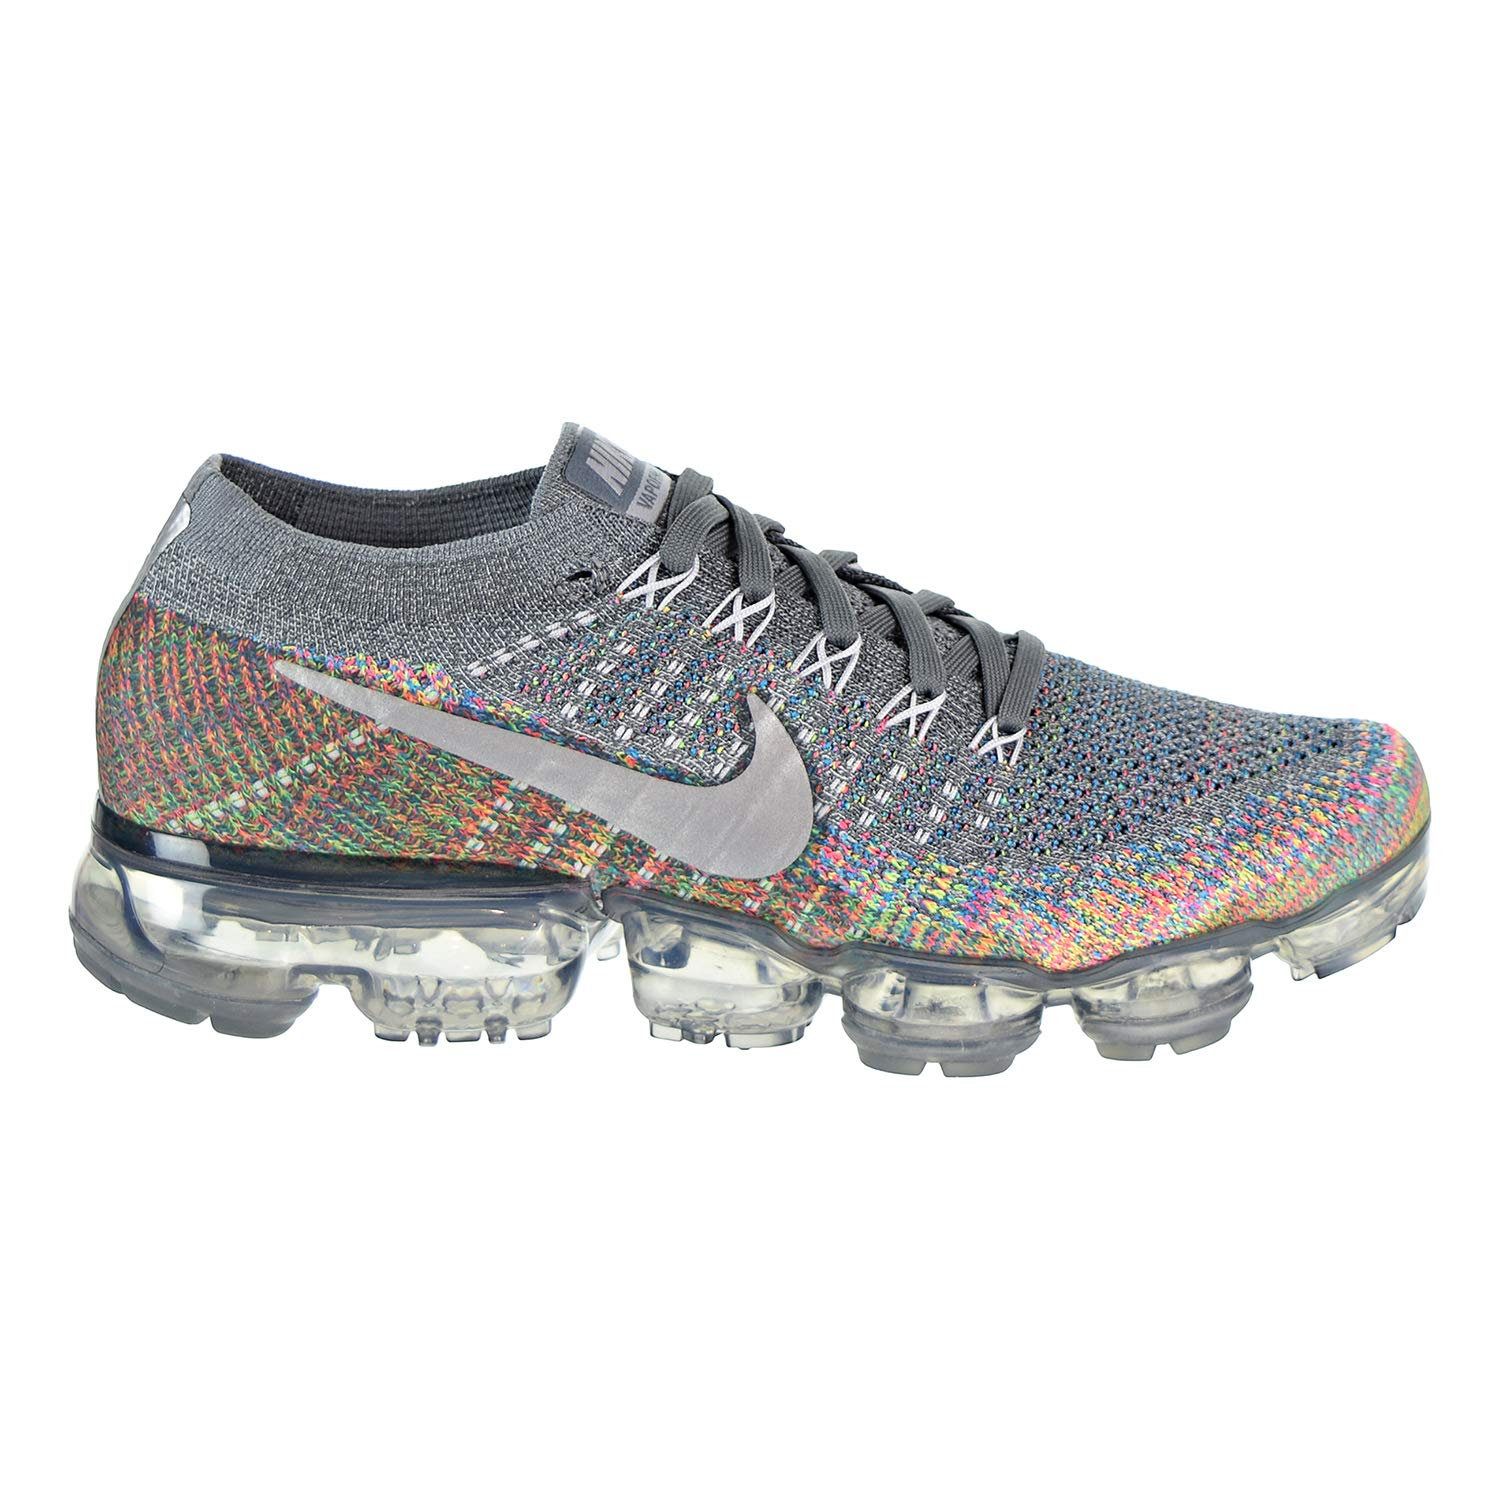 size 40 93b3d 3ed38 Nike Air Vapormax Flyknit Women's Shoes Dark Grey/Reflect Silver 849557-019